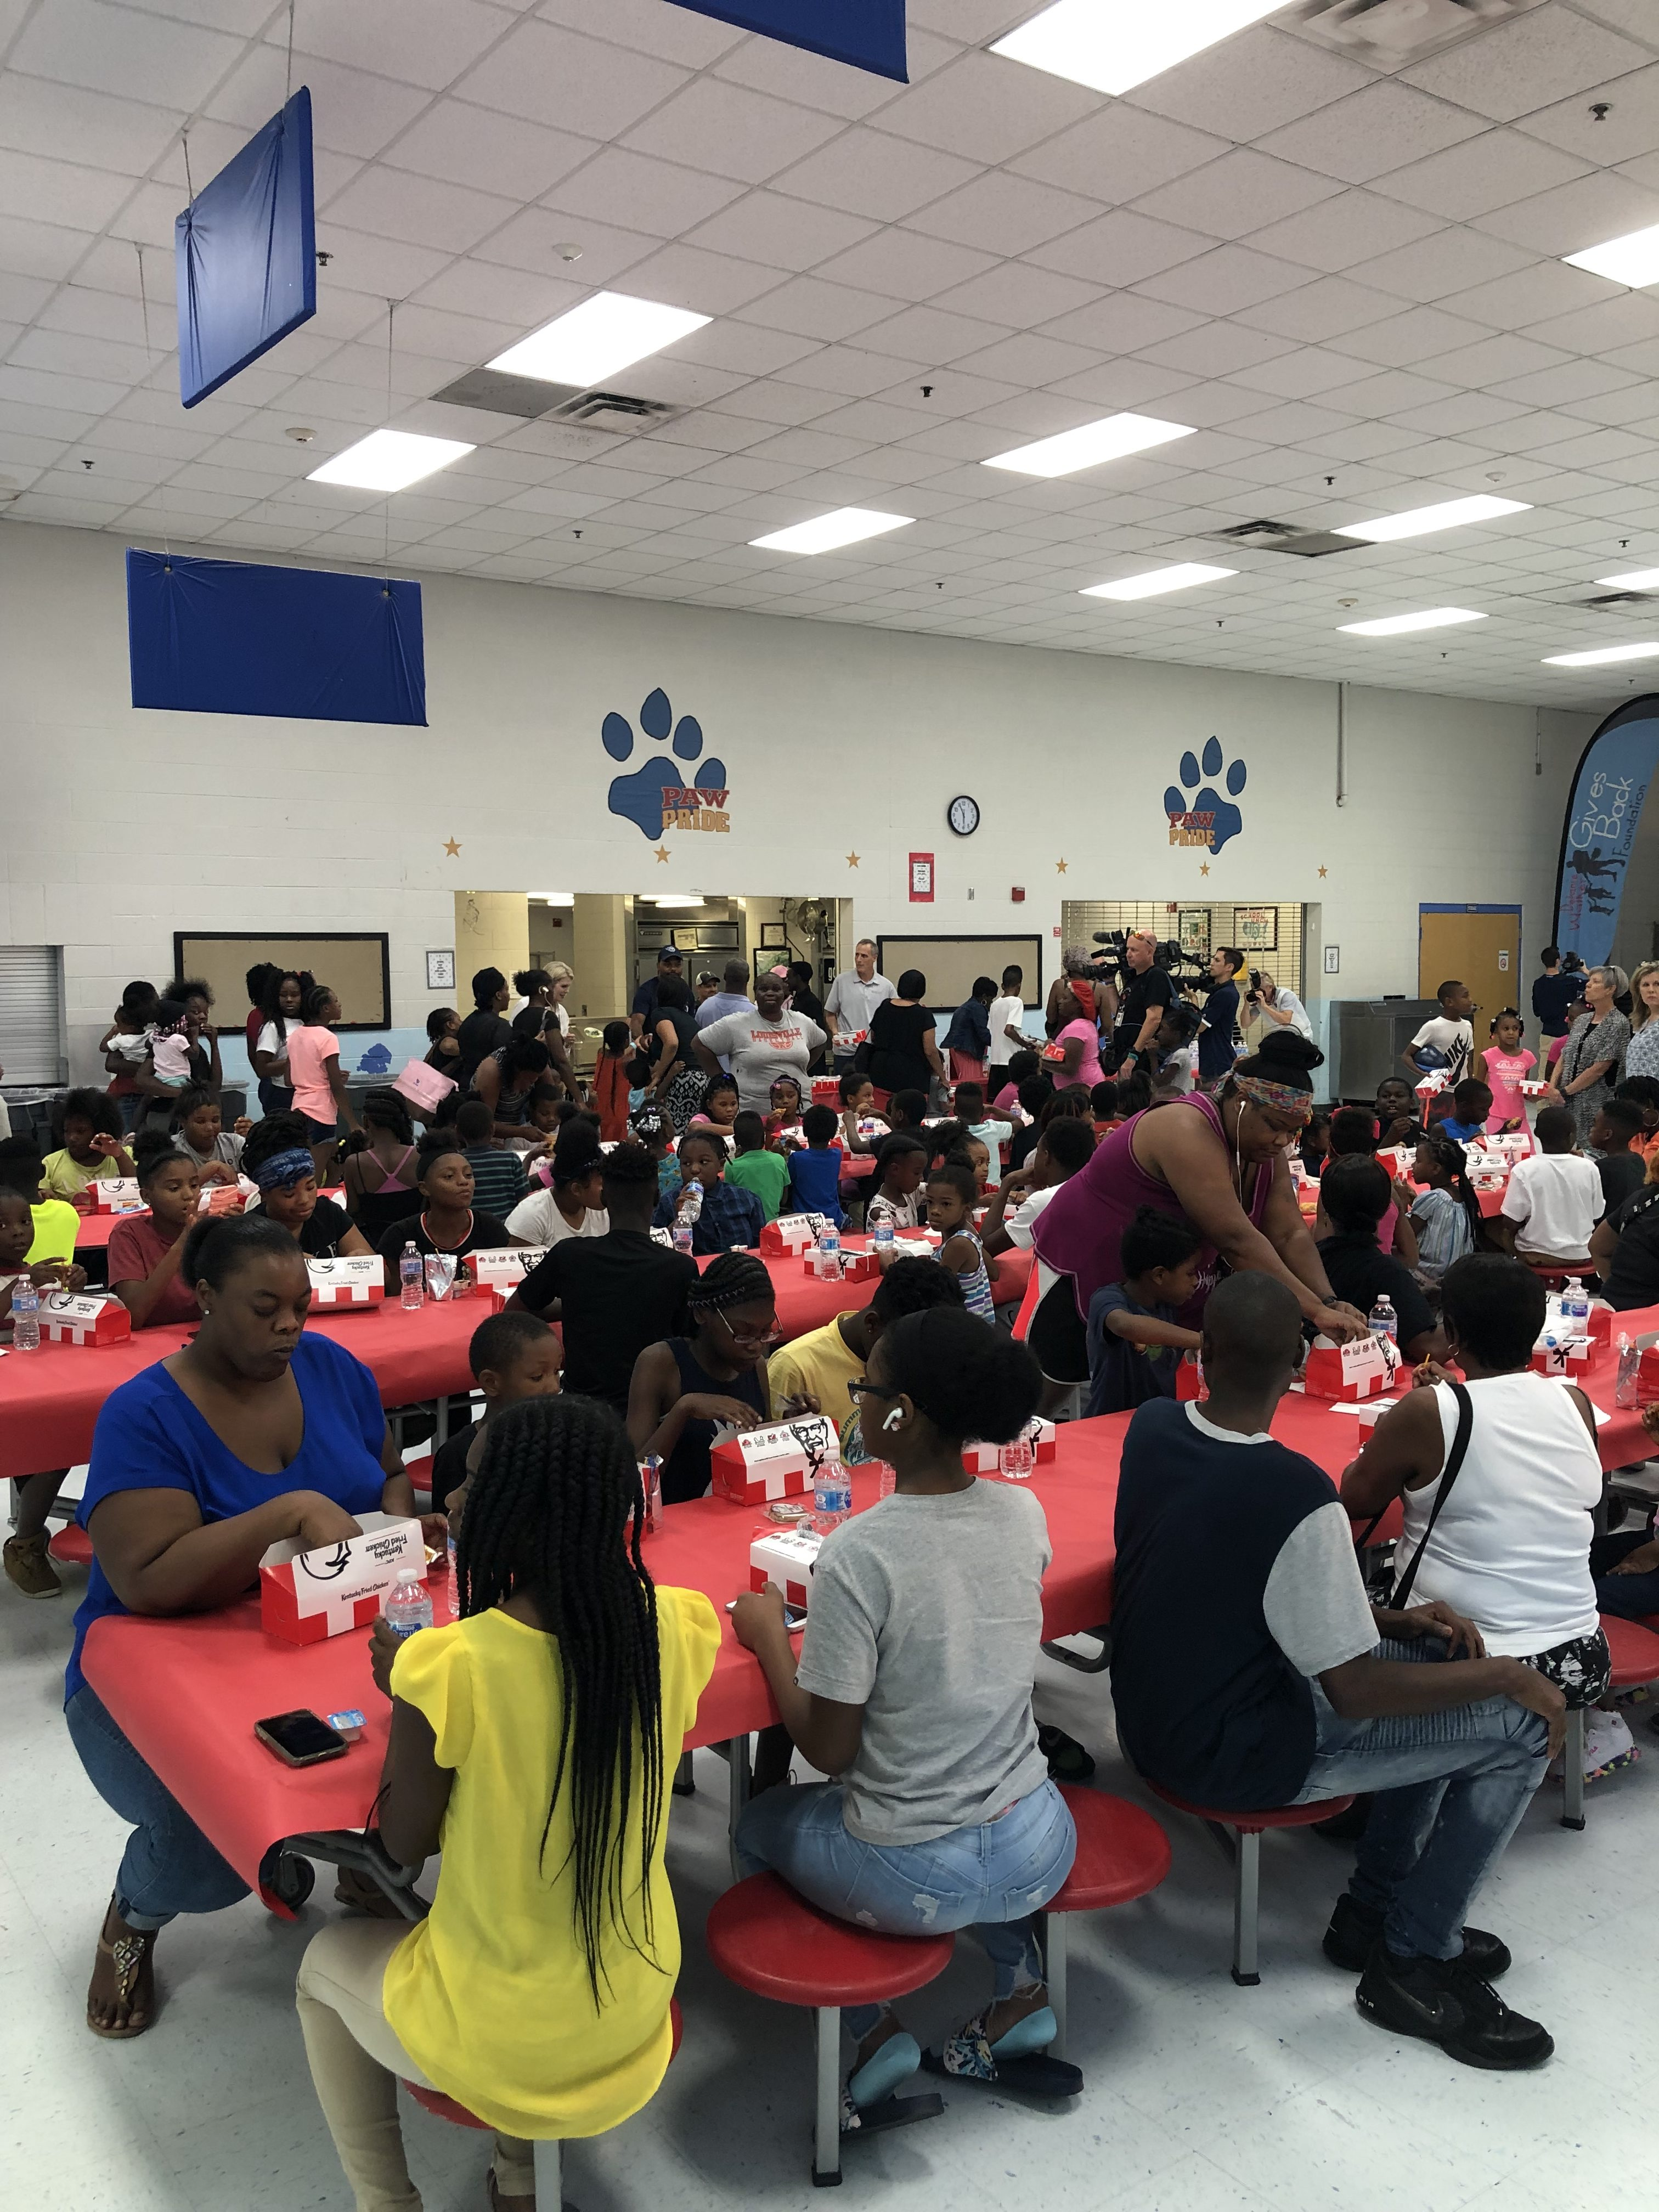 A cafeteria filled with young students and families eating KFC food